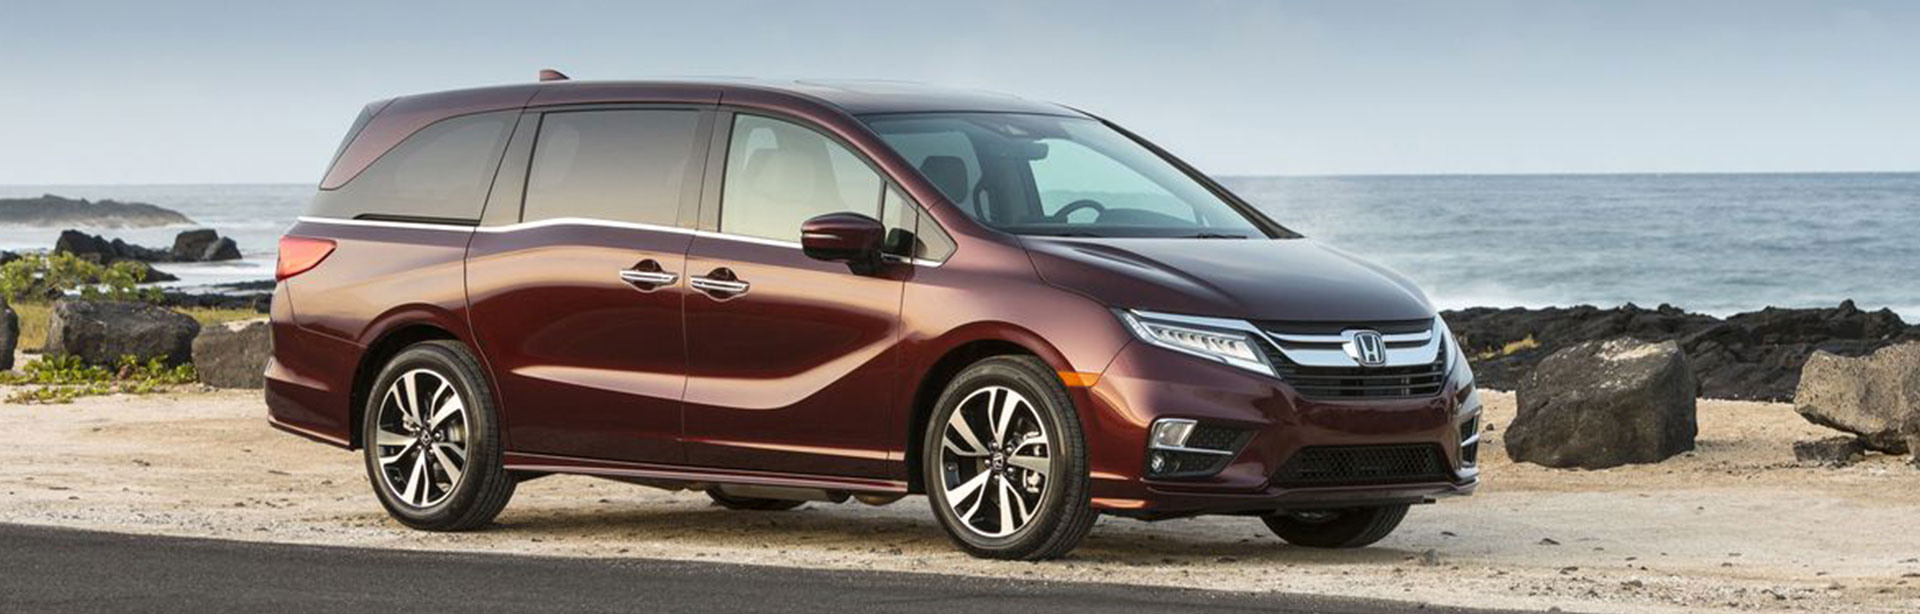 Introducing the 2020 Honda Odyssey